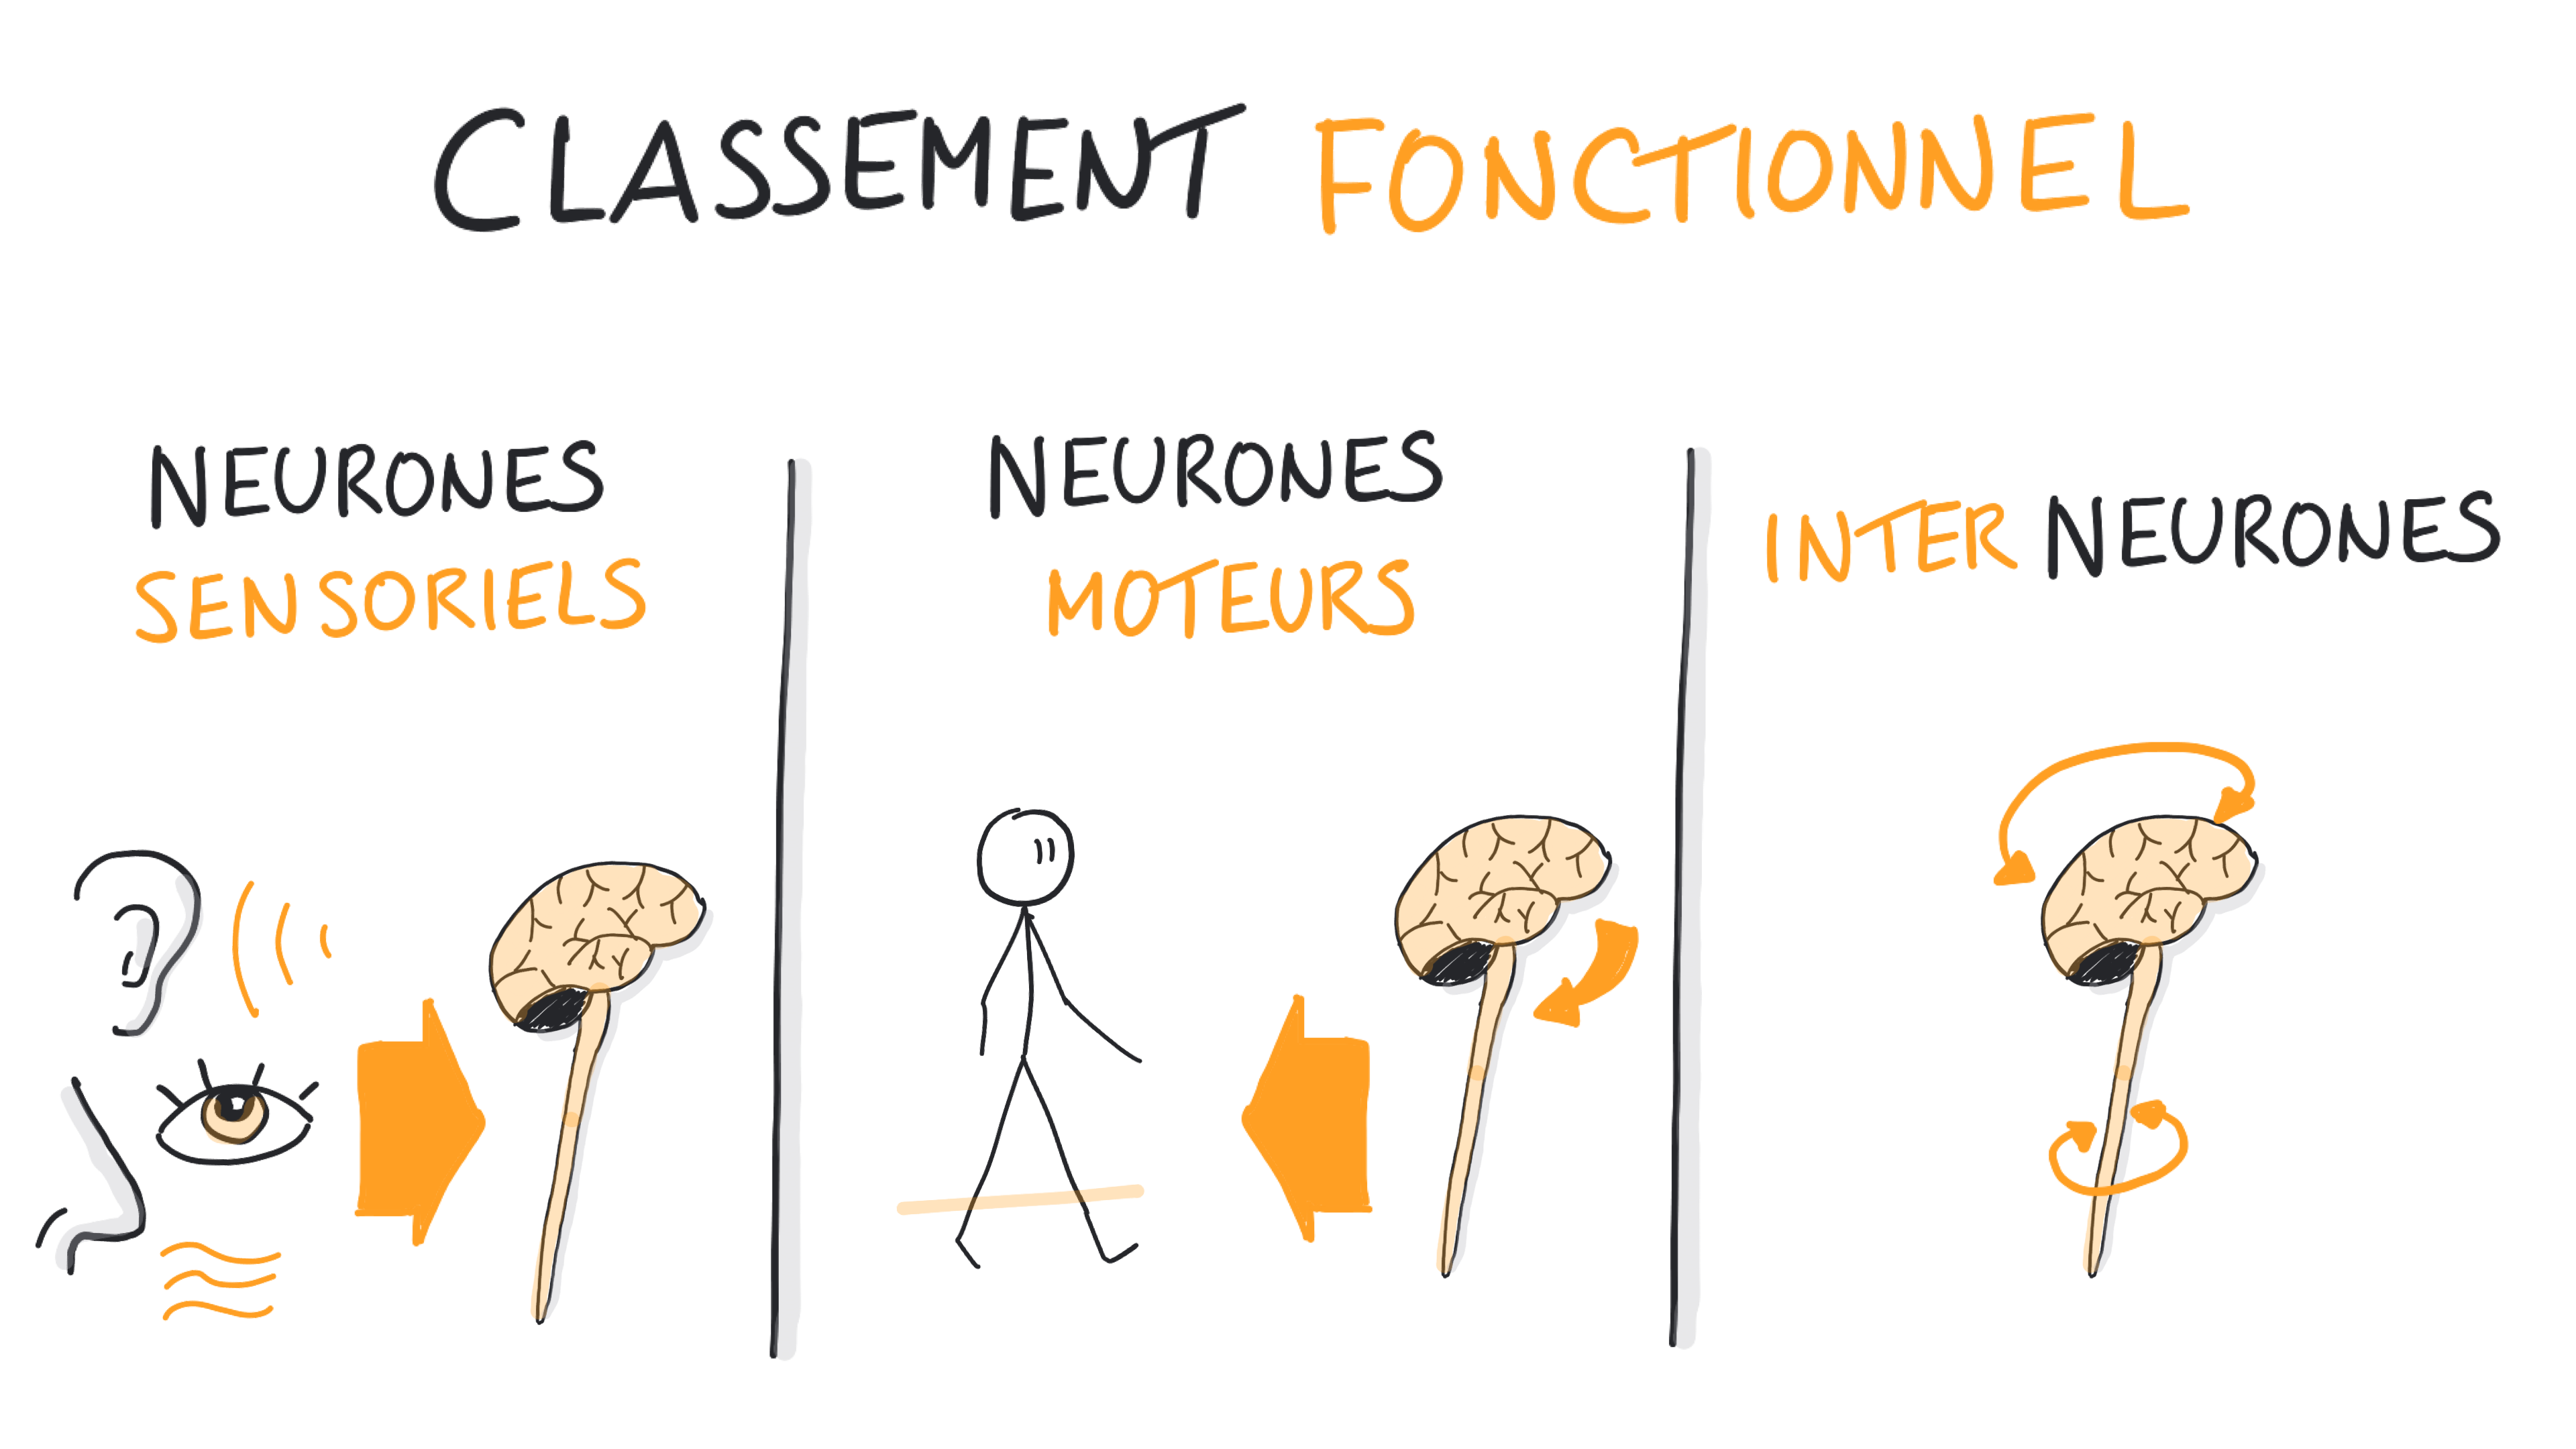 Classification foctionnelle